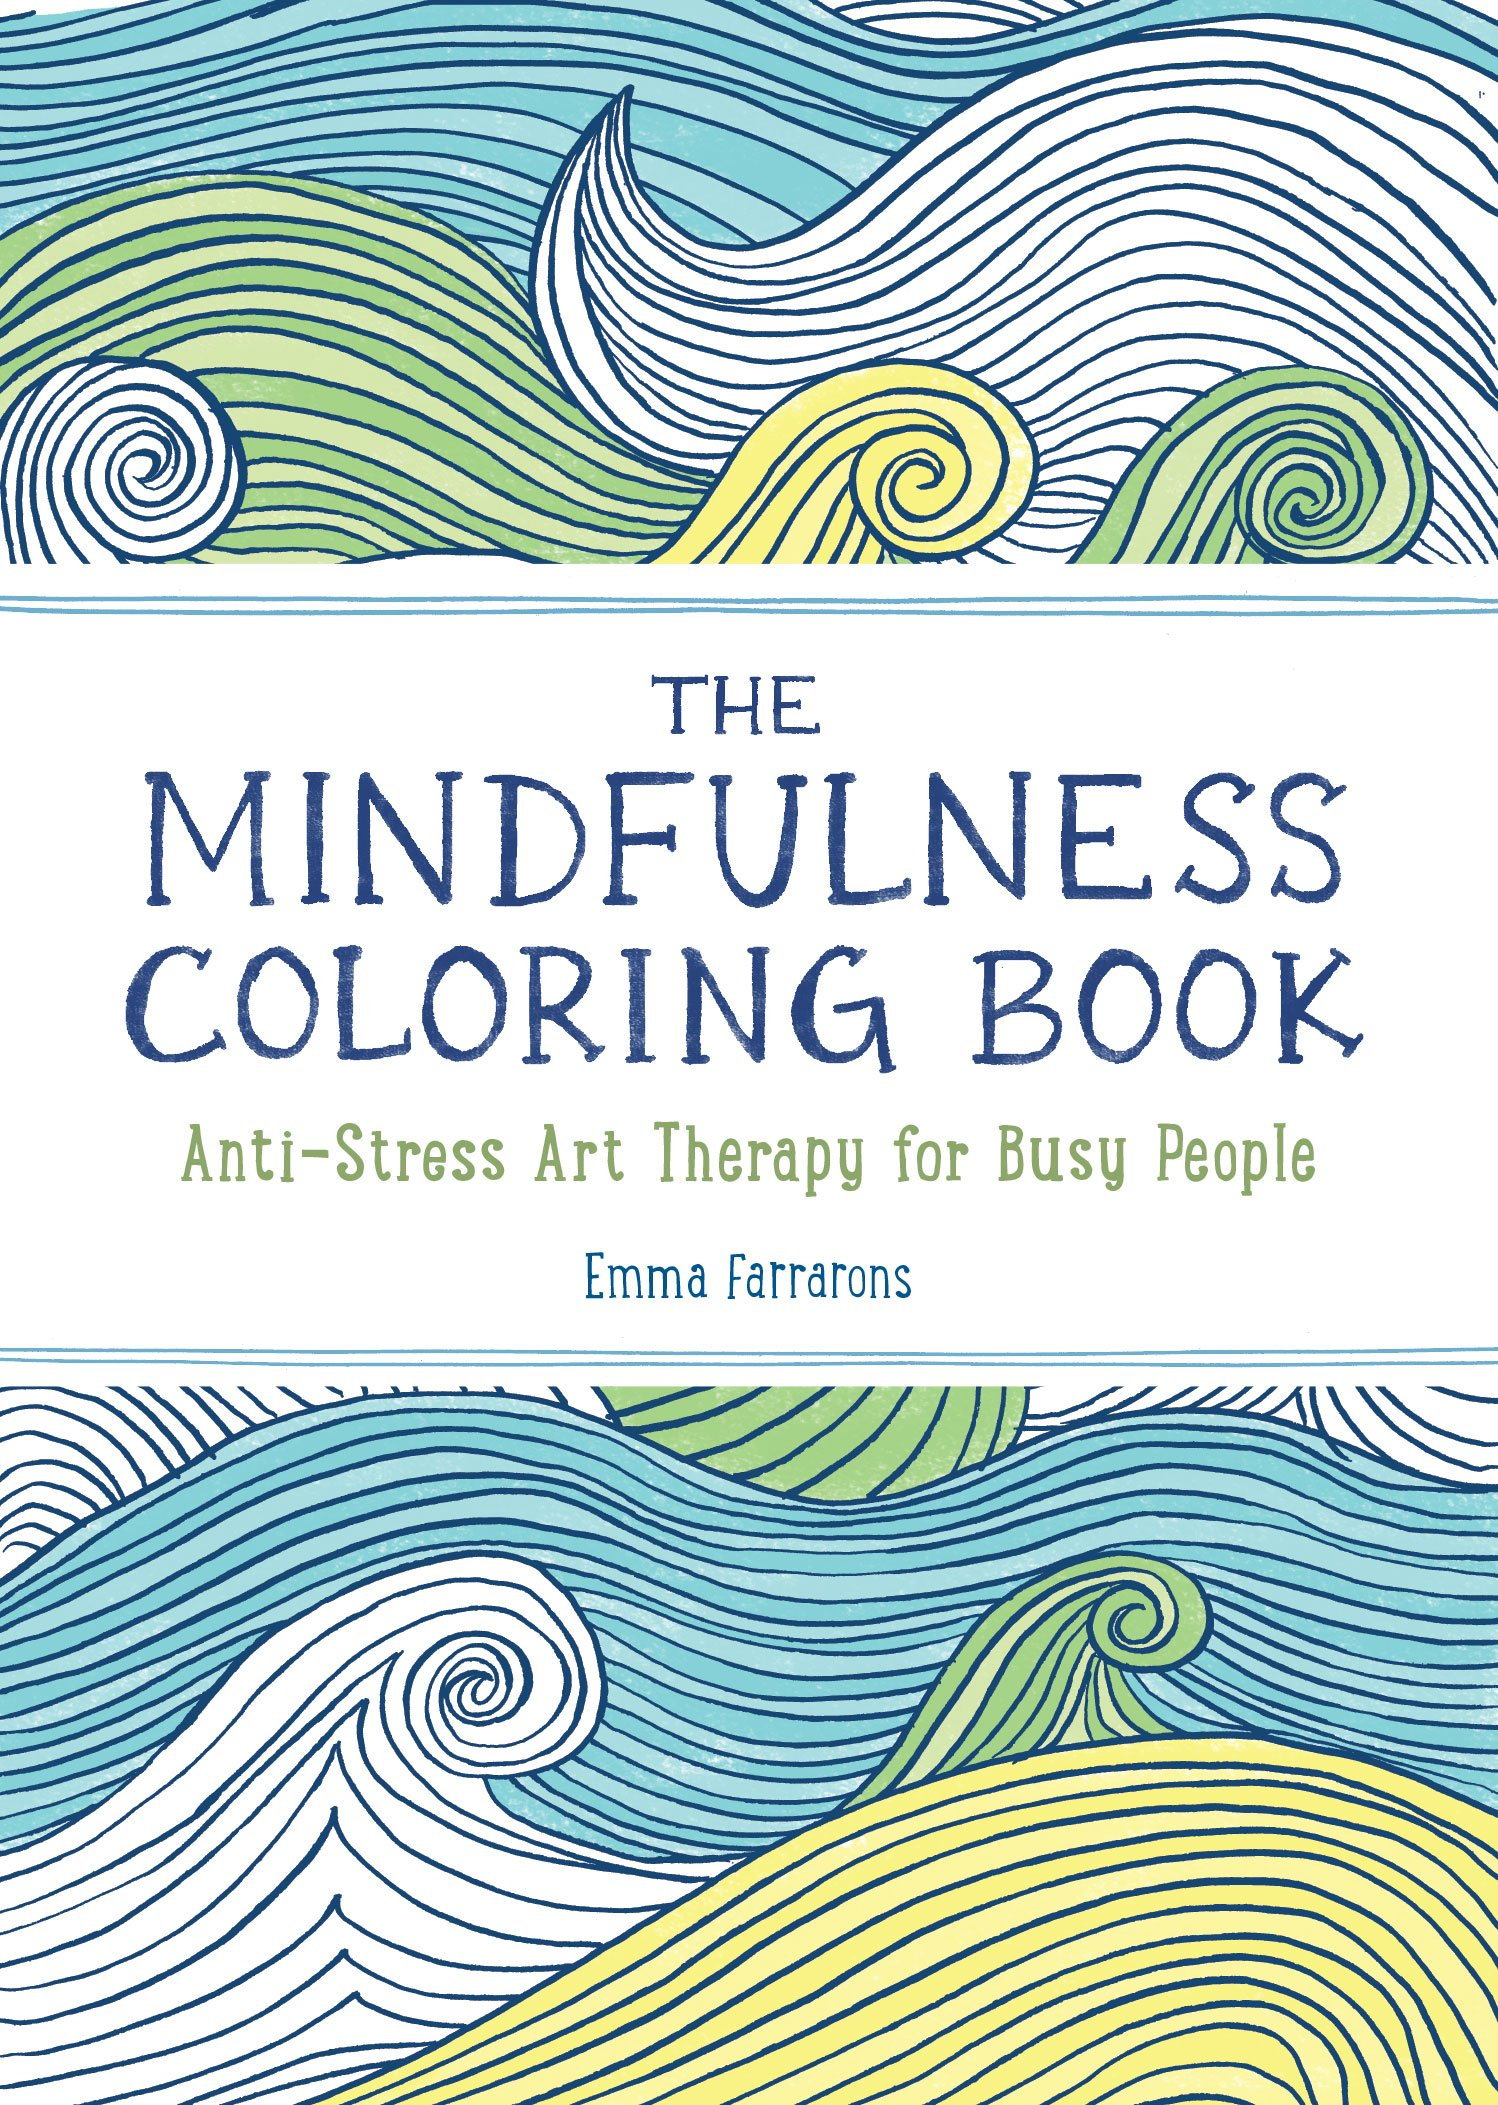 1 The Mindfulness Coloring Book Anti Stress Art Therapy For Busy People Series Emma Farrarons 9781615192823 Amazon